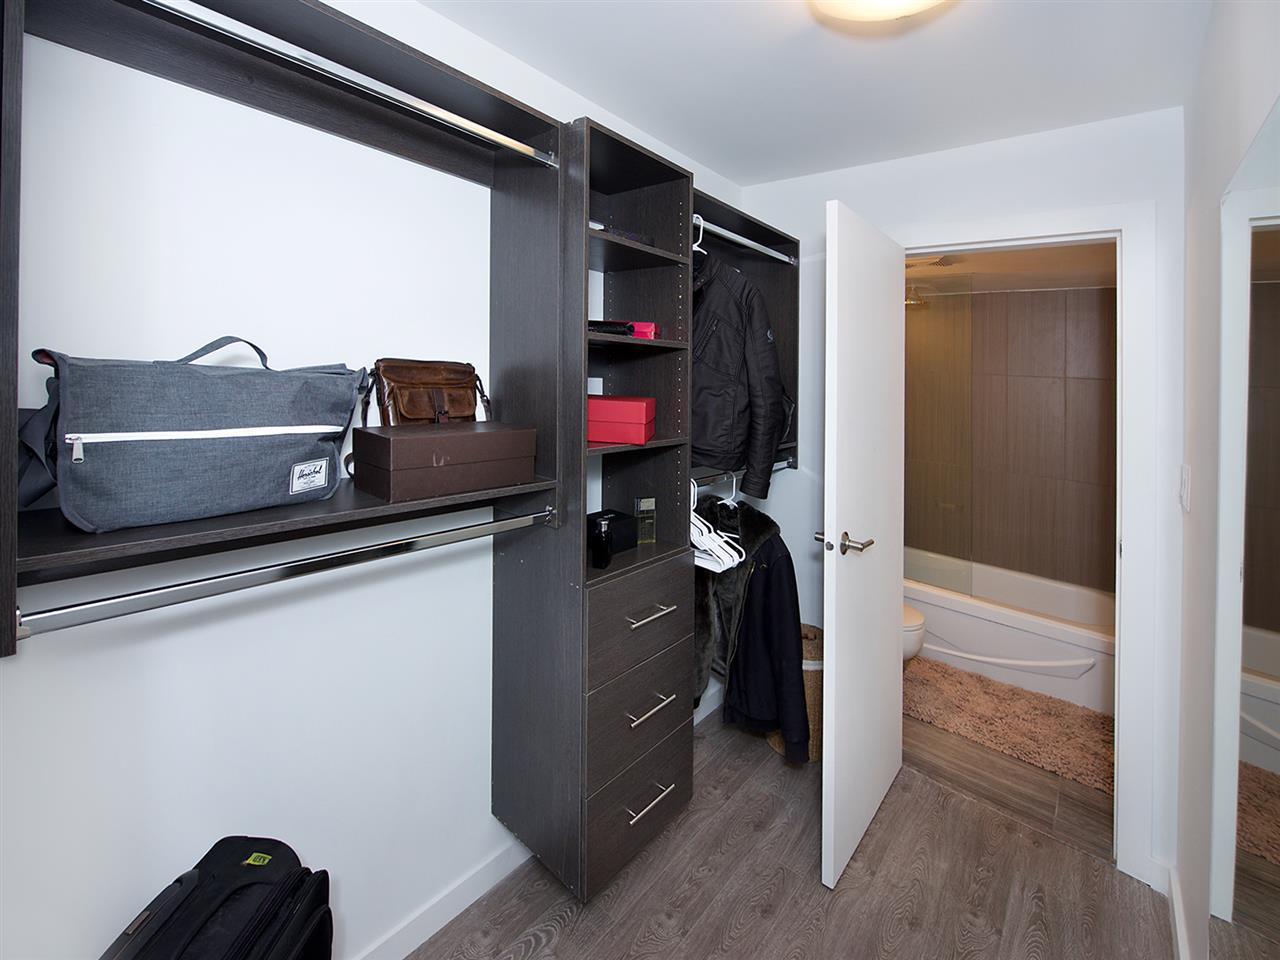 Photo 13: 207 1465 COMOX STREET in Vancouver: West End VW Condo for sale (Vancouver West)  : MLS(r) # R2024122